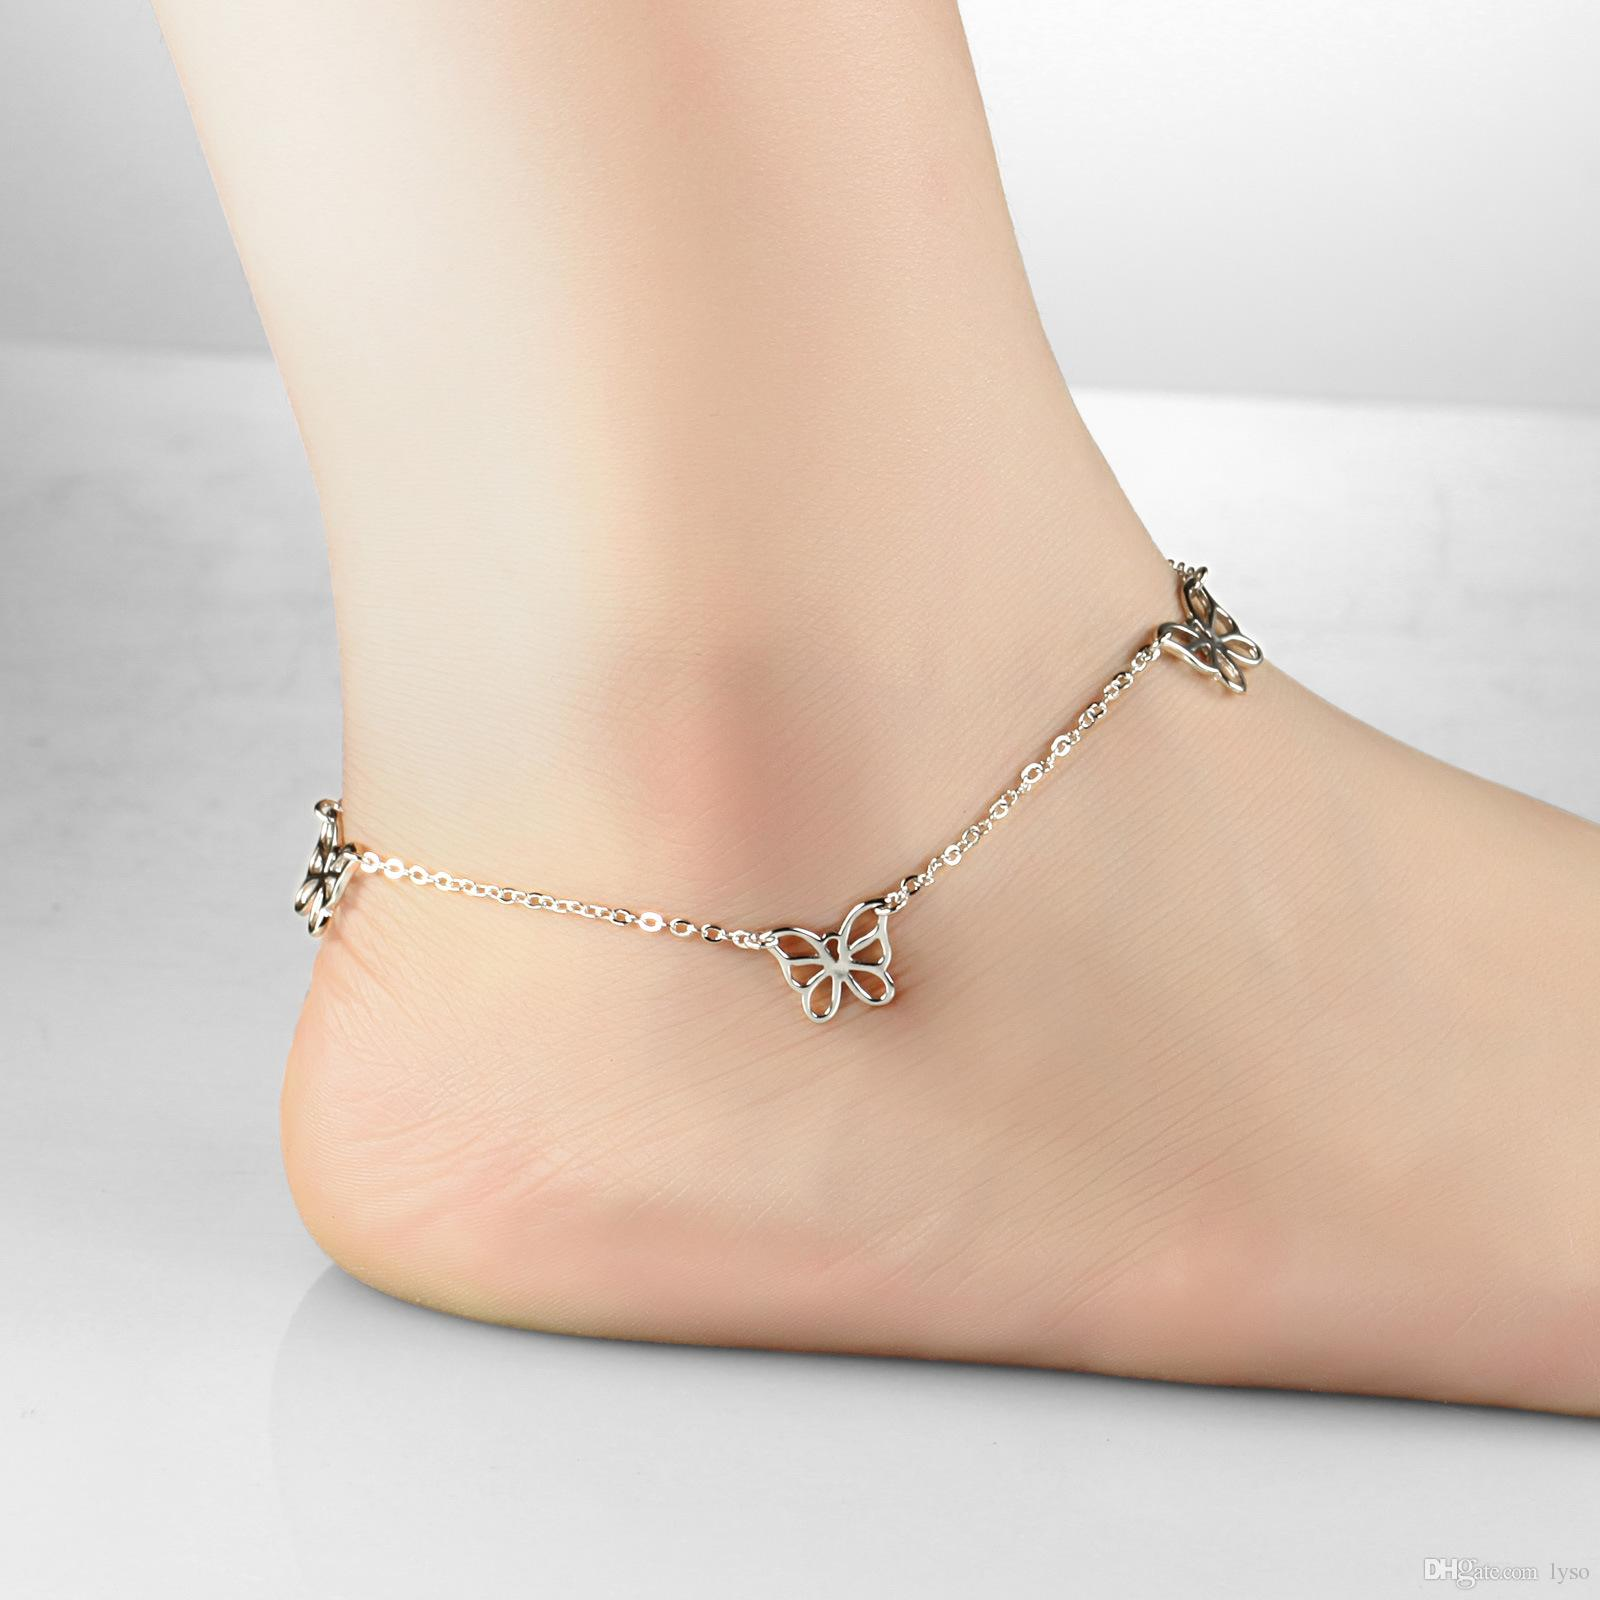 bell accessories on bracelet jewelry in beachwear foot bracelets gypsy anklets beach ankle anklet from women womens silver item bohemia sandal chain boho